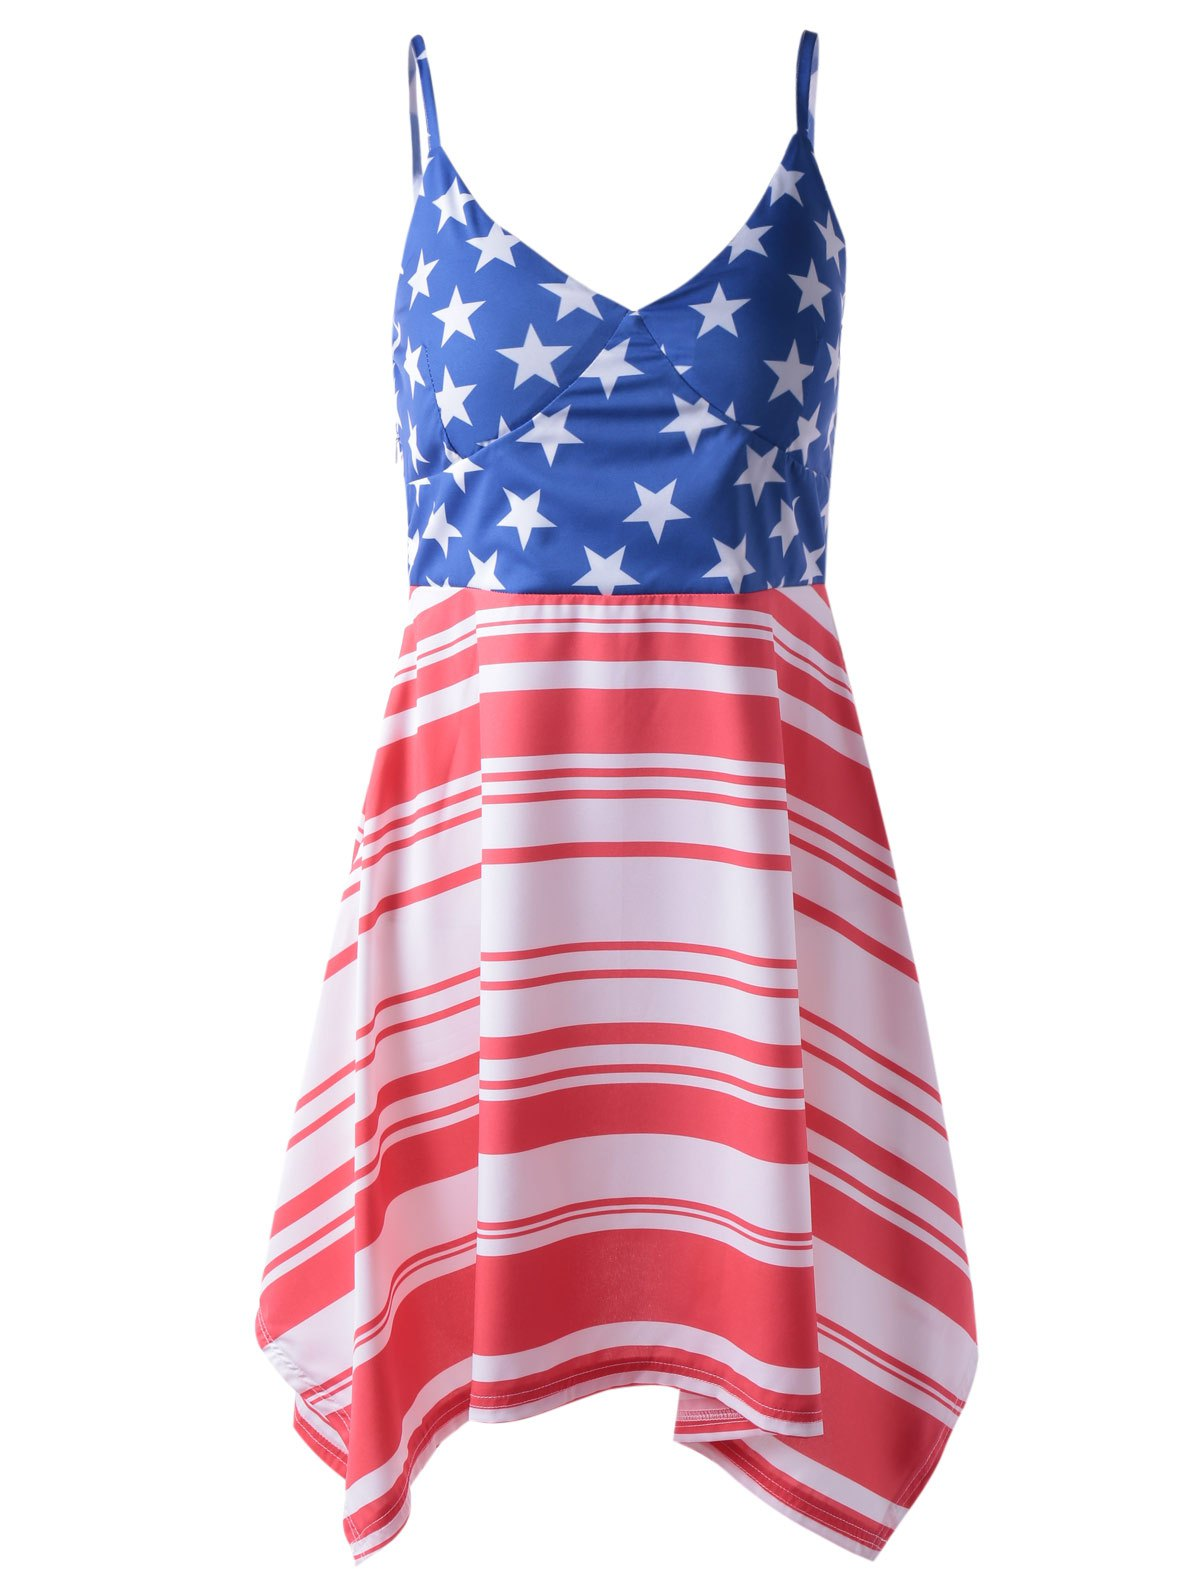 Fashionable Woman's Americana Flag Printing Spaghetti Strap Asymmetric Dress - RED/WHITE/BLUE XL